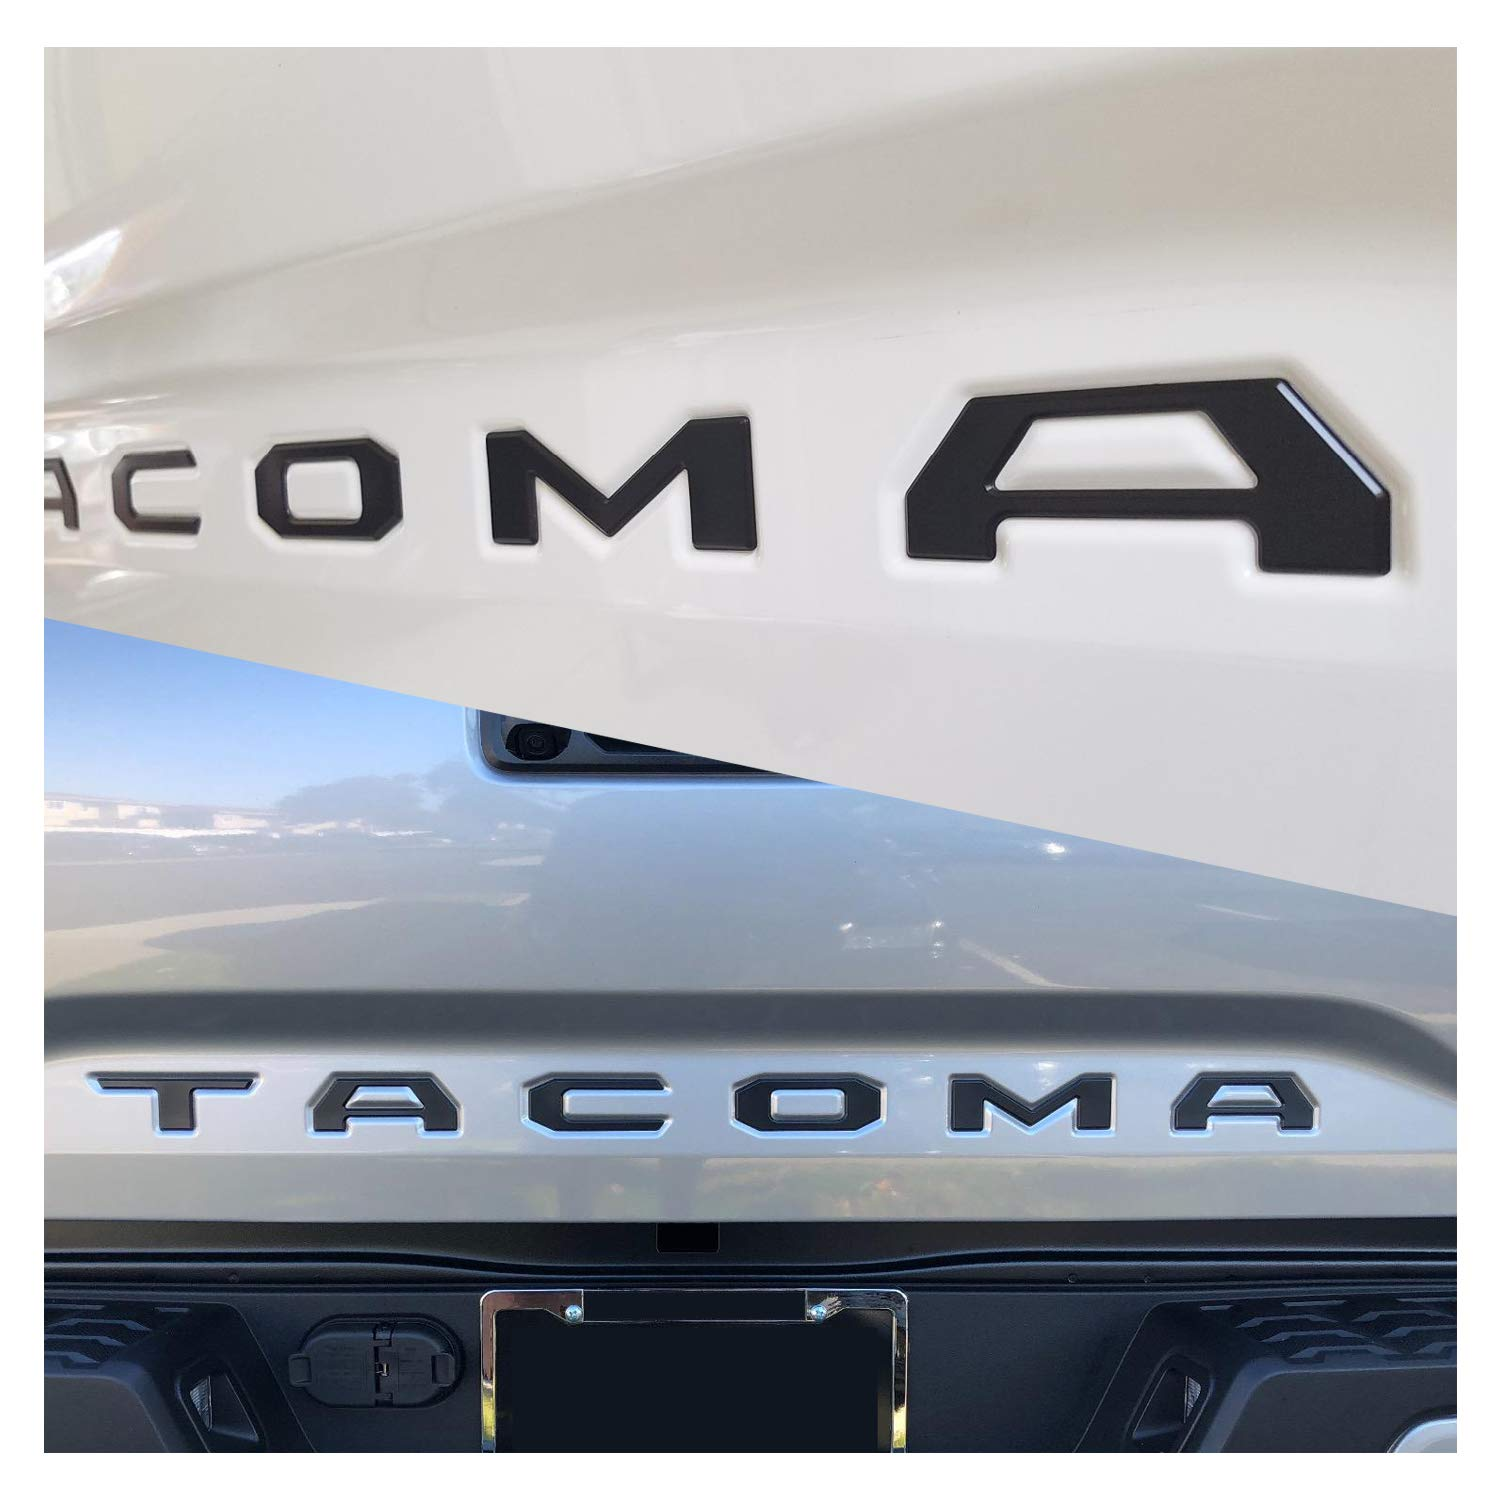 Zinc Alloy Emblem Inserts Seven Sparta Tailgate Letters for Toyota Tacoma 2016 2017 2018 3D Raised Black Letters for Tacoma